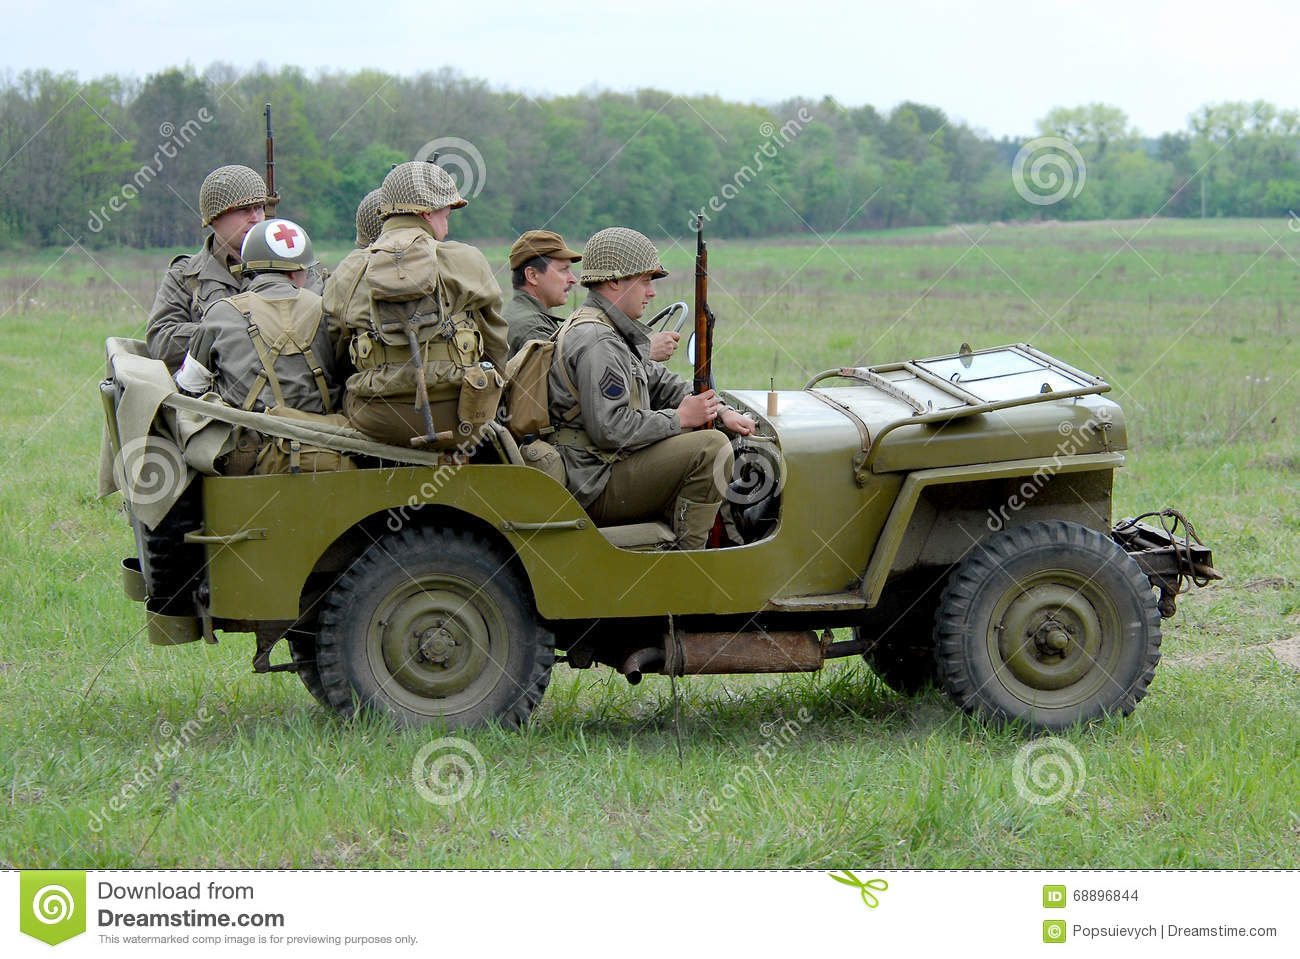 Jeep mb jeep : Willys MB jeep editorial stock image. Image of khaki - 68896844